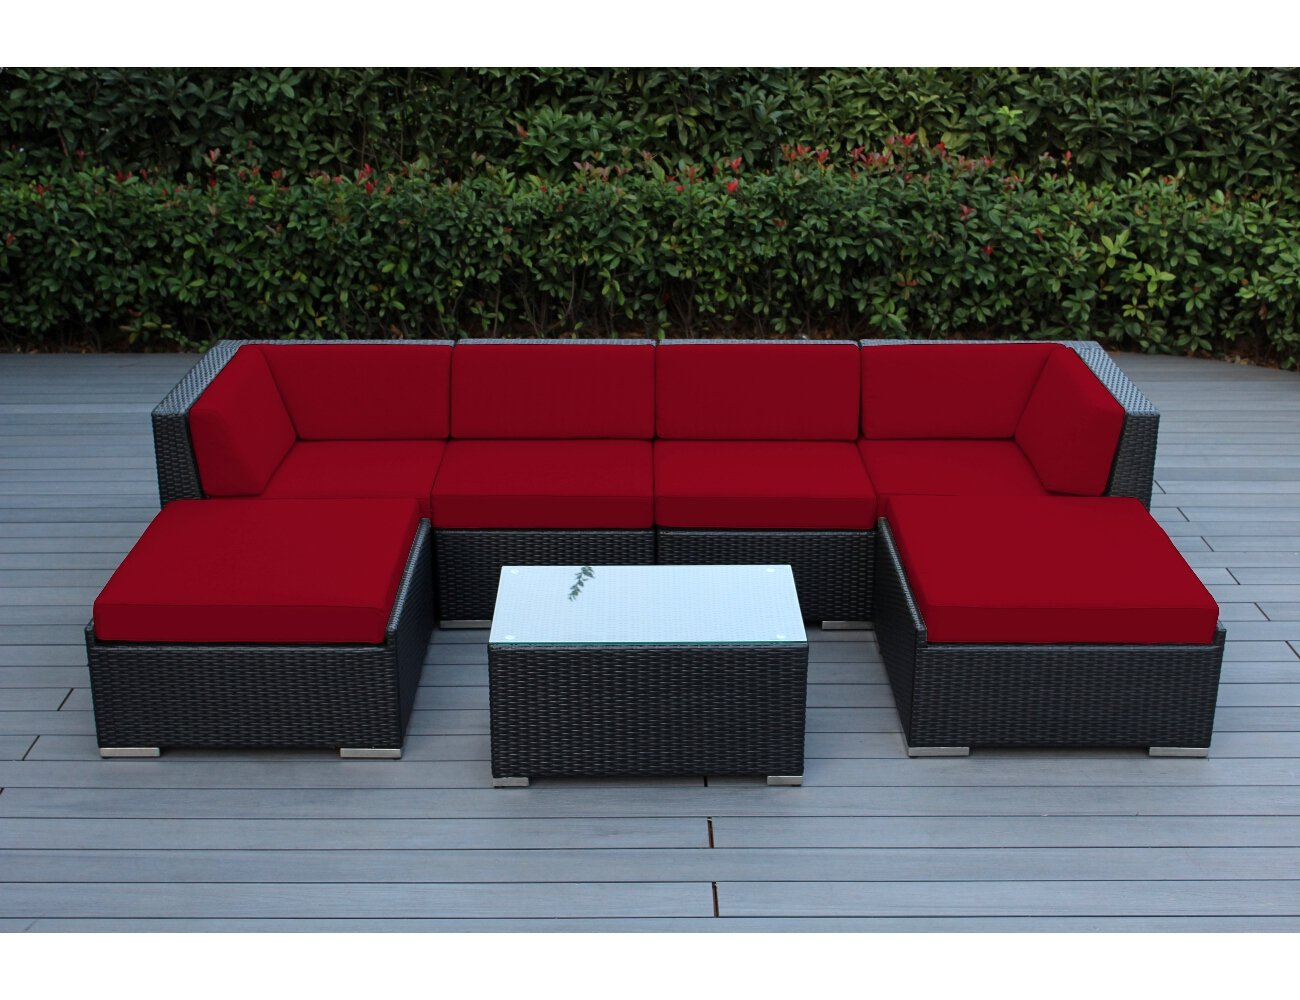 Ohana 7-Piece Patio Wicker Sectional Sofa Set with Cover, Red - All Weather Black PE Resin Wicker Couch Set is modular and can be arranged many ways 7pc Set includes 2 Corner Sofas + 2 Middle Sofas + 2 Large Ottomans +1 Coffee Table. The Sofa set is 28 inches tall to provide full support for your back. Weather resistent cushion covers are durable, resilient against the elements, and zippered for easy cleaning - patio-furniture, patio, conversation-sets - 71z3wVswBwL -